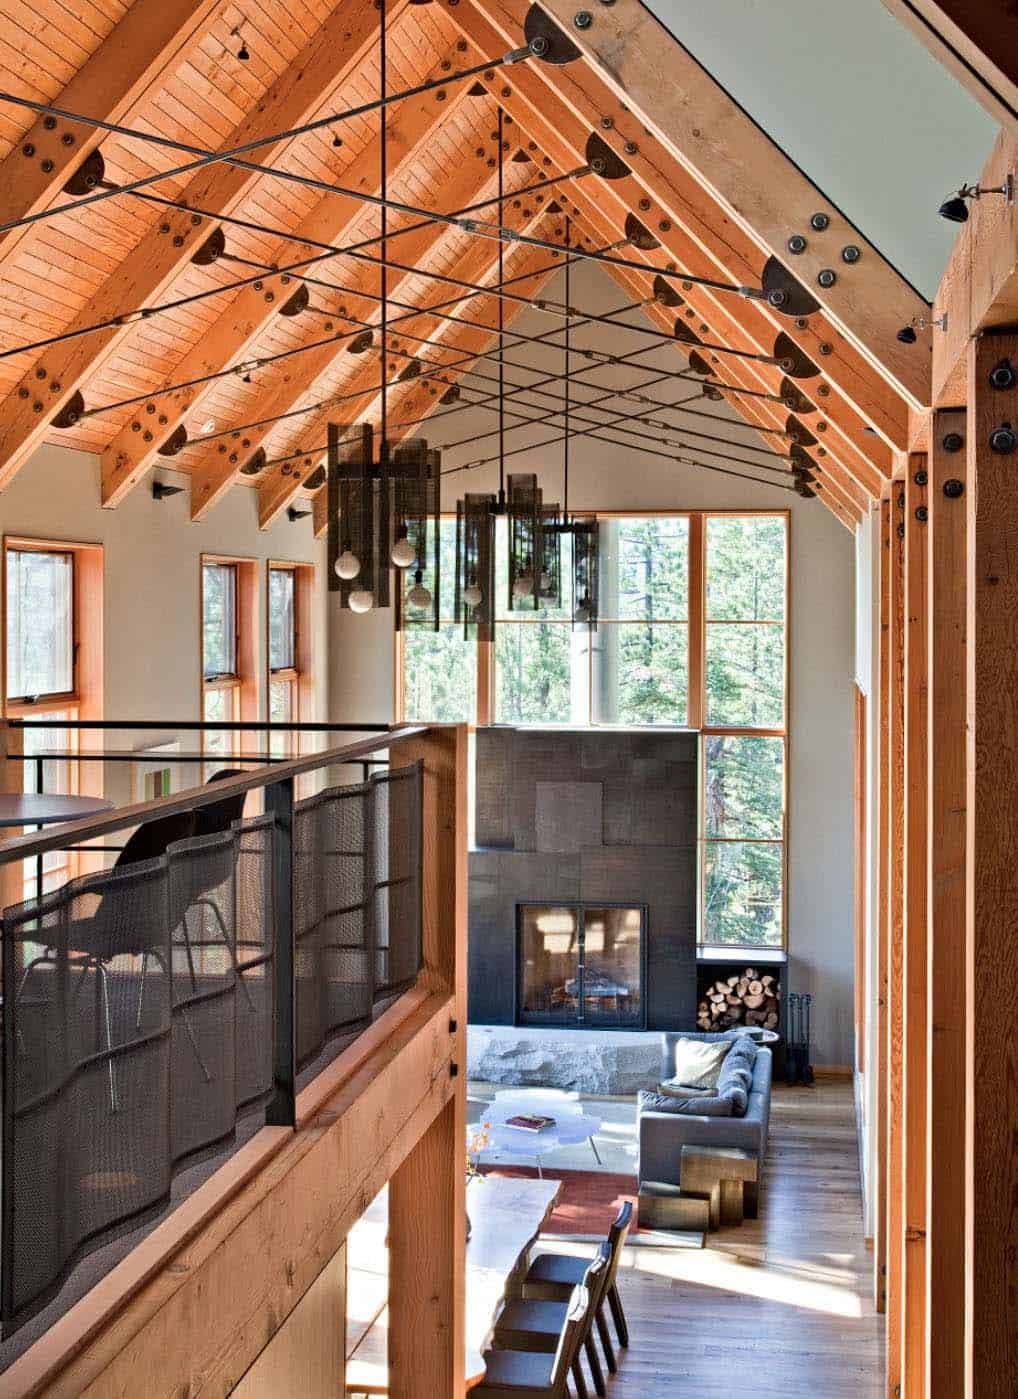 Rustic-Modern-Home-WA Design-21-1 Kindesign